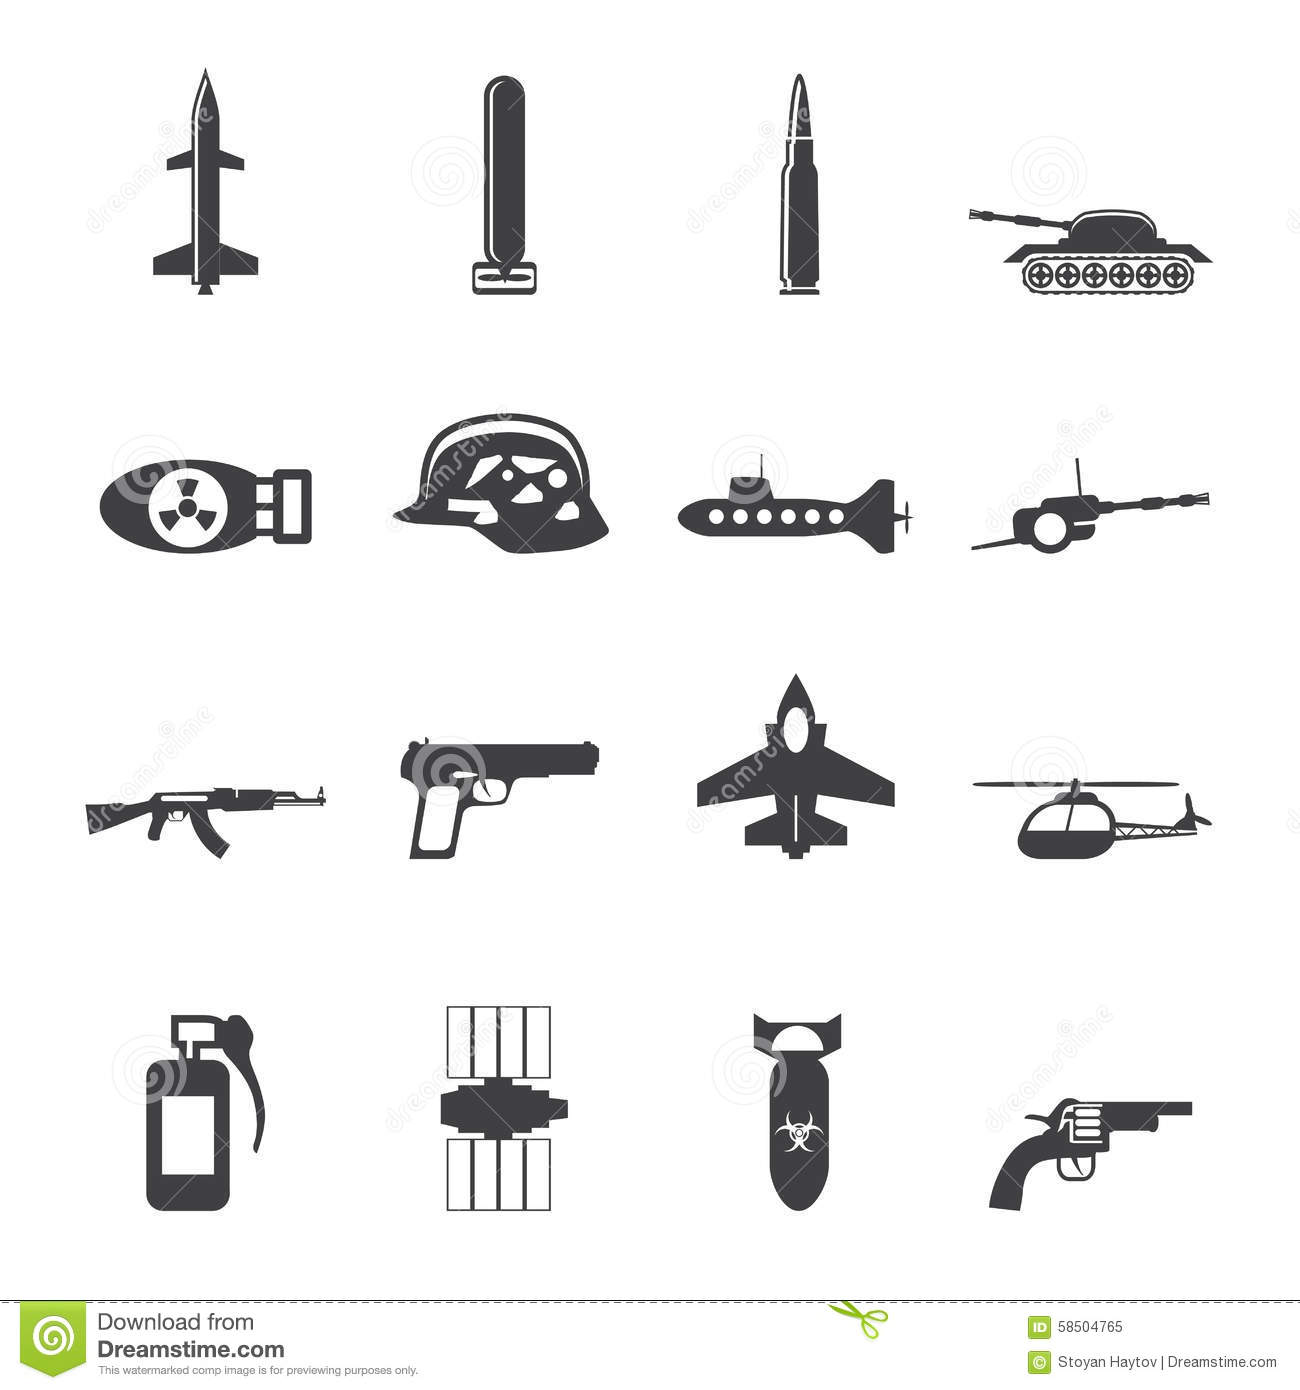 Silhouette Simple Weapon, Arms And War Icons Stock Vector